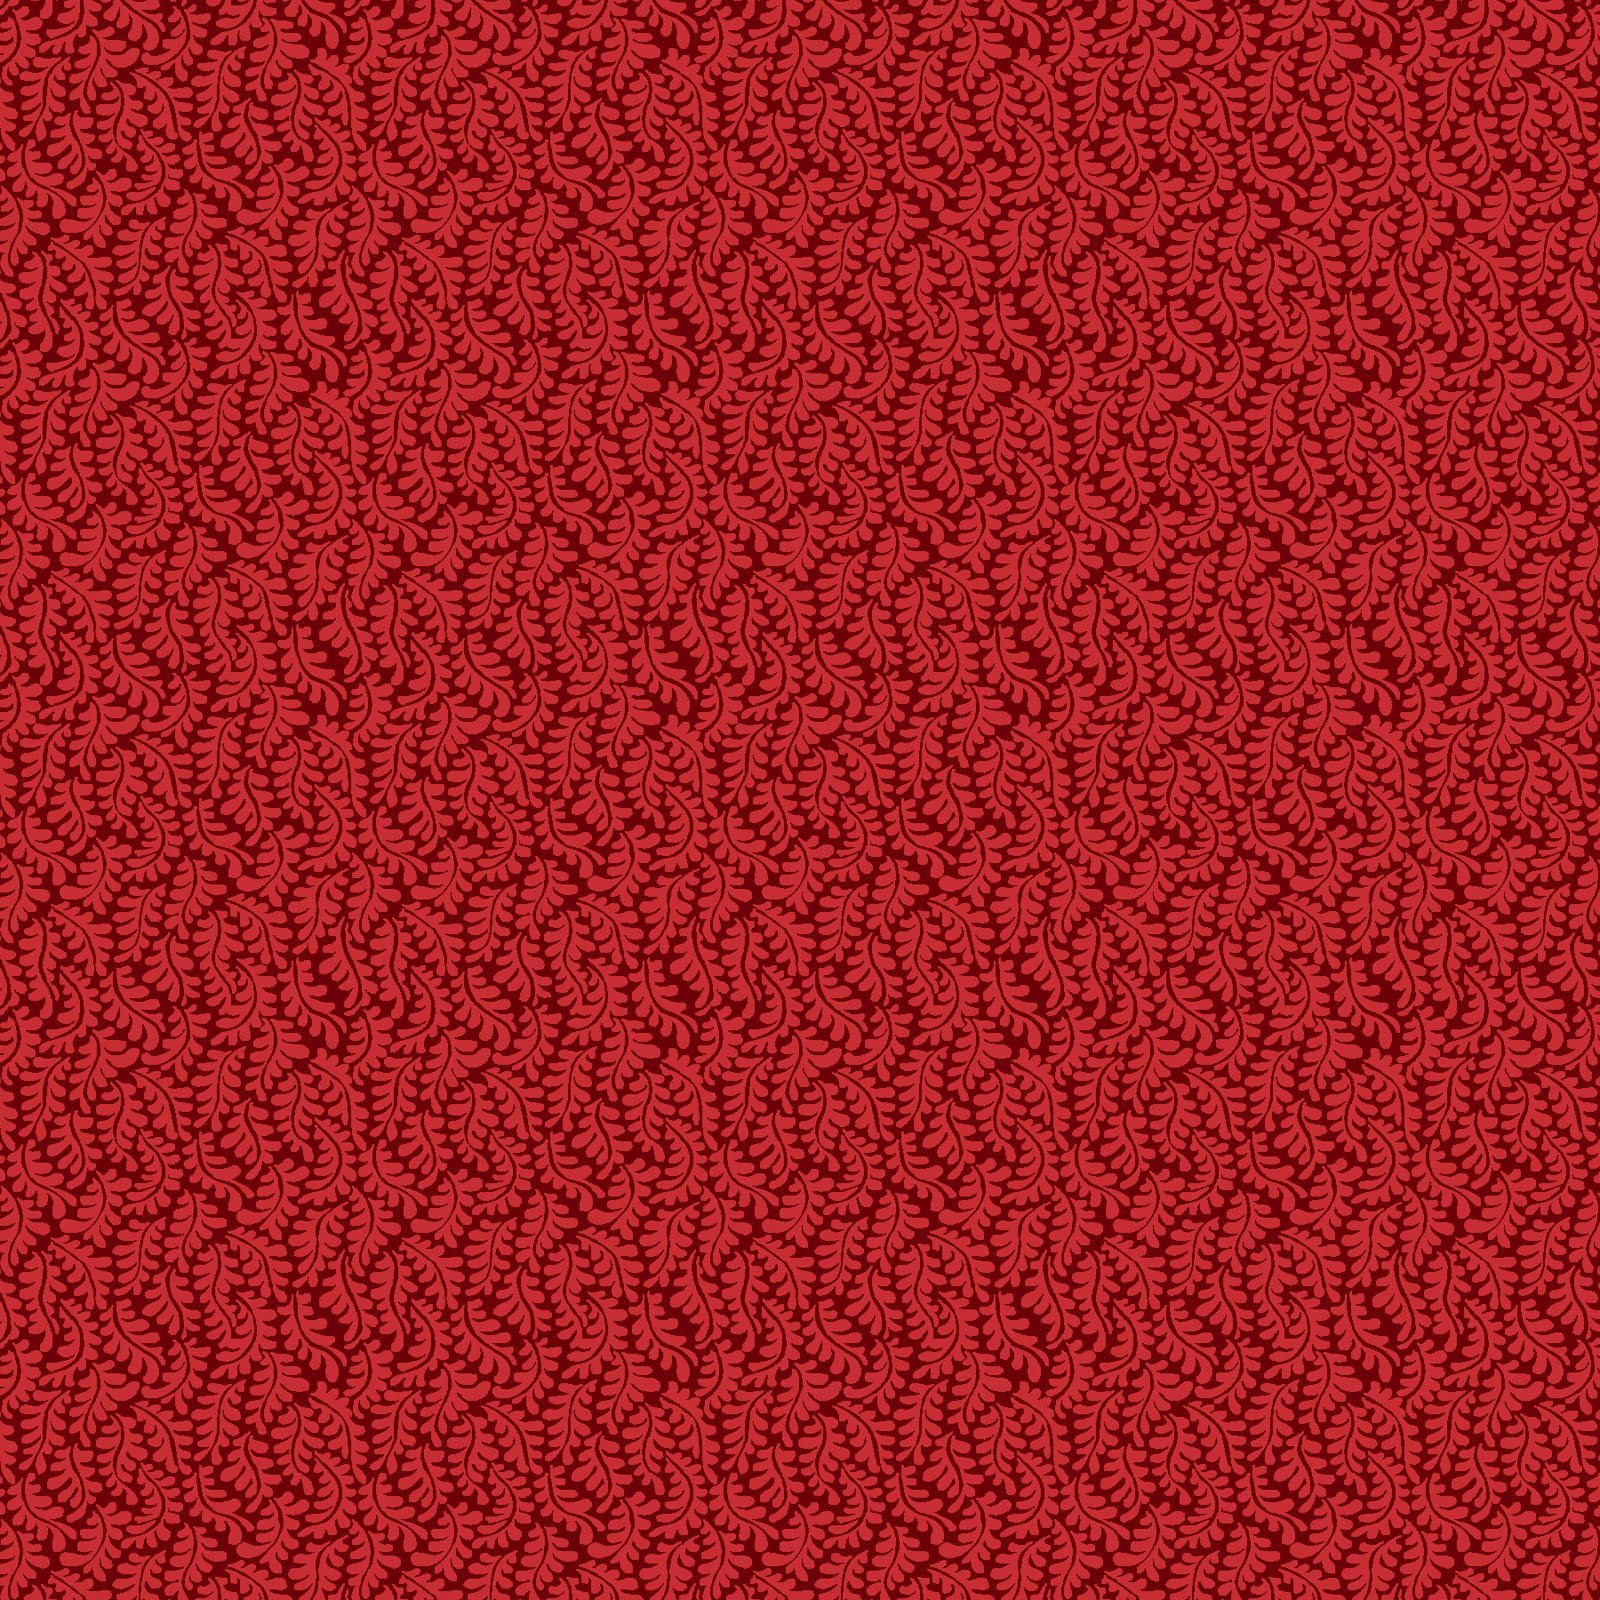 EESC-9878 R - BELLE EPOQUE BY MAYWOOD STUDIO MICRO LEAVES RED - ARRIVING JANUARY 2021